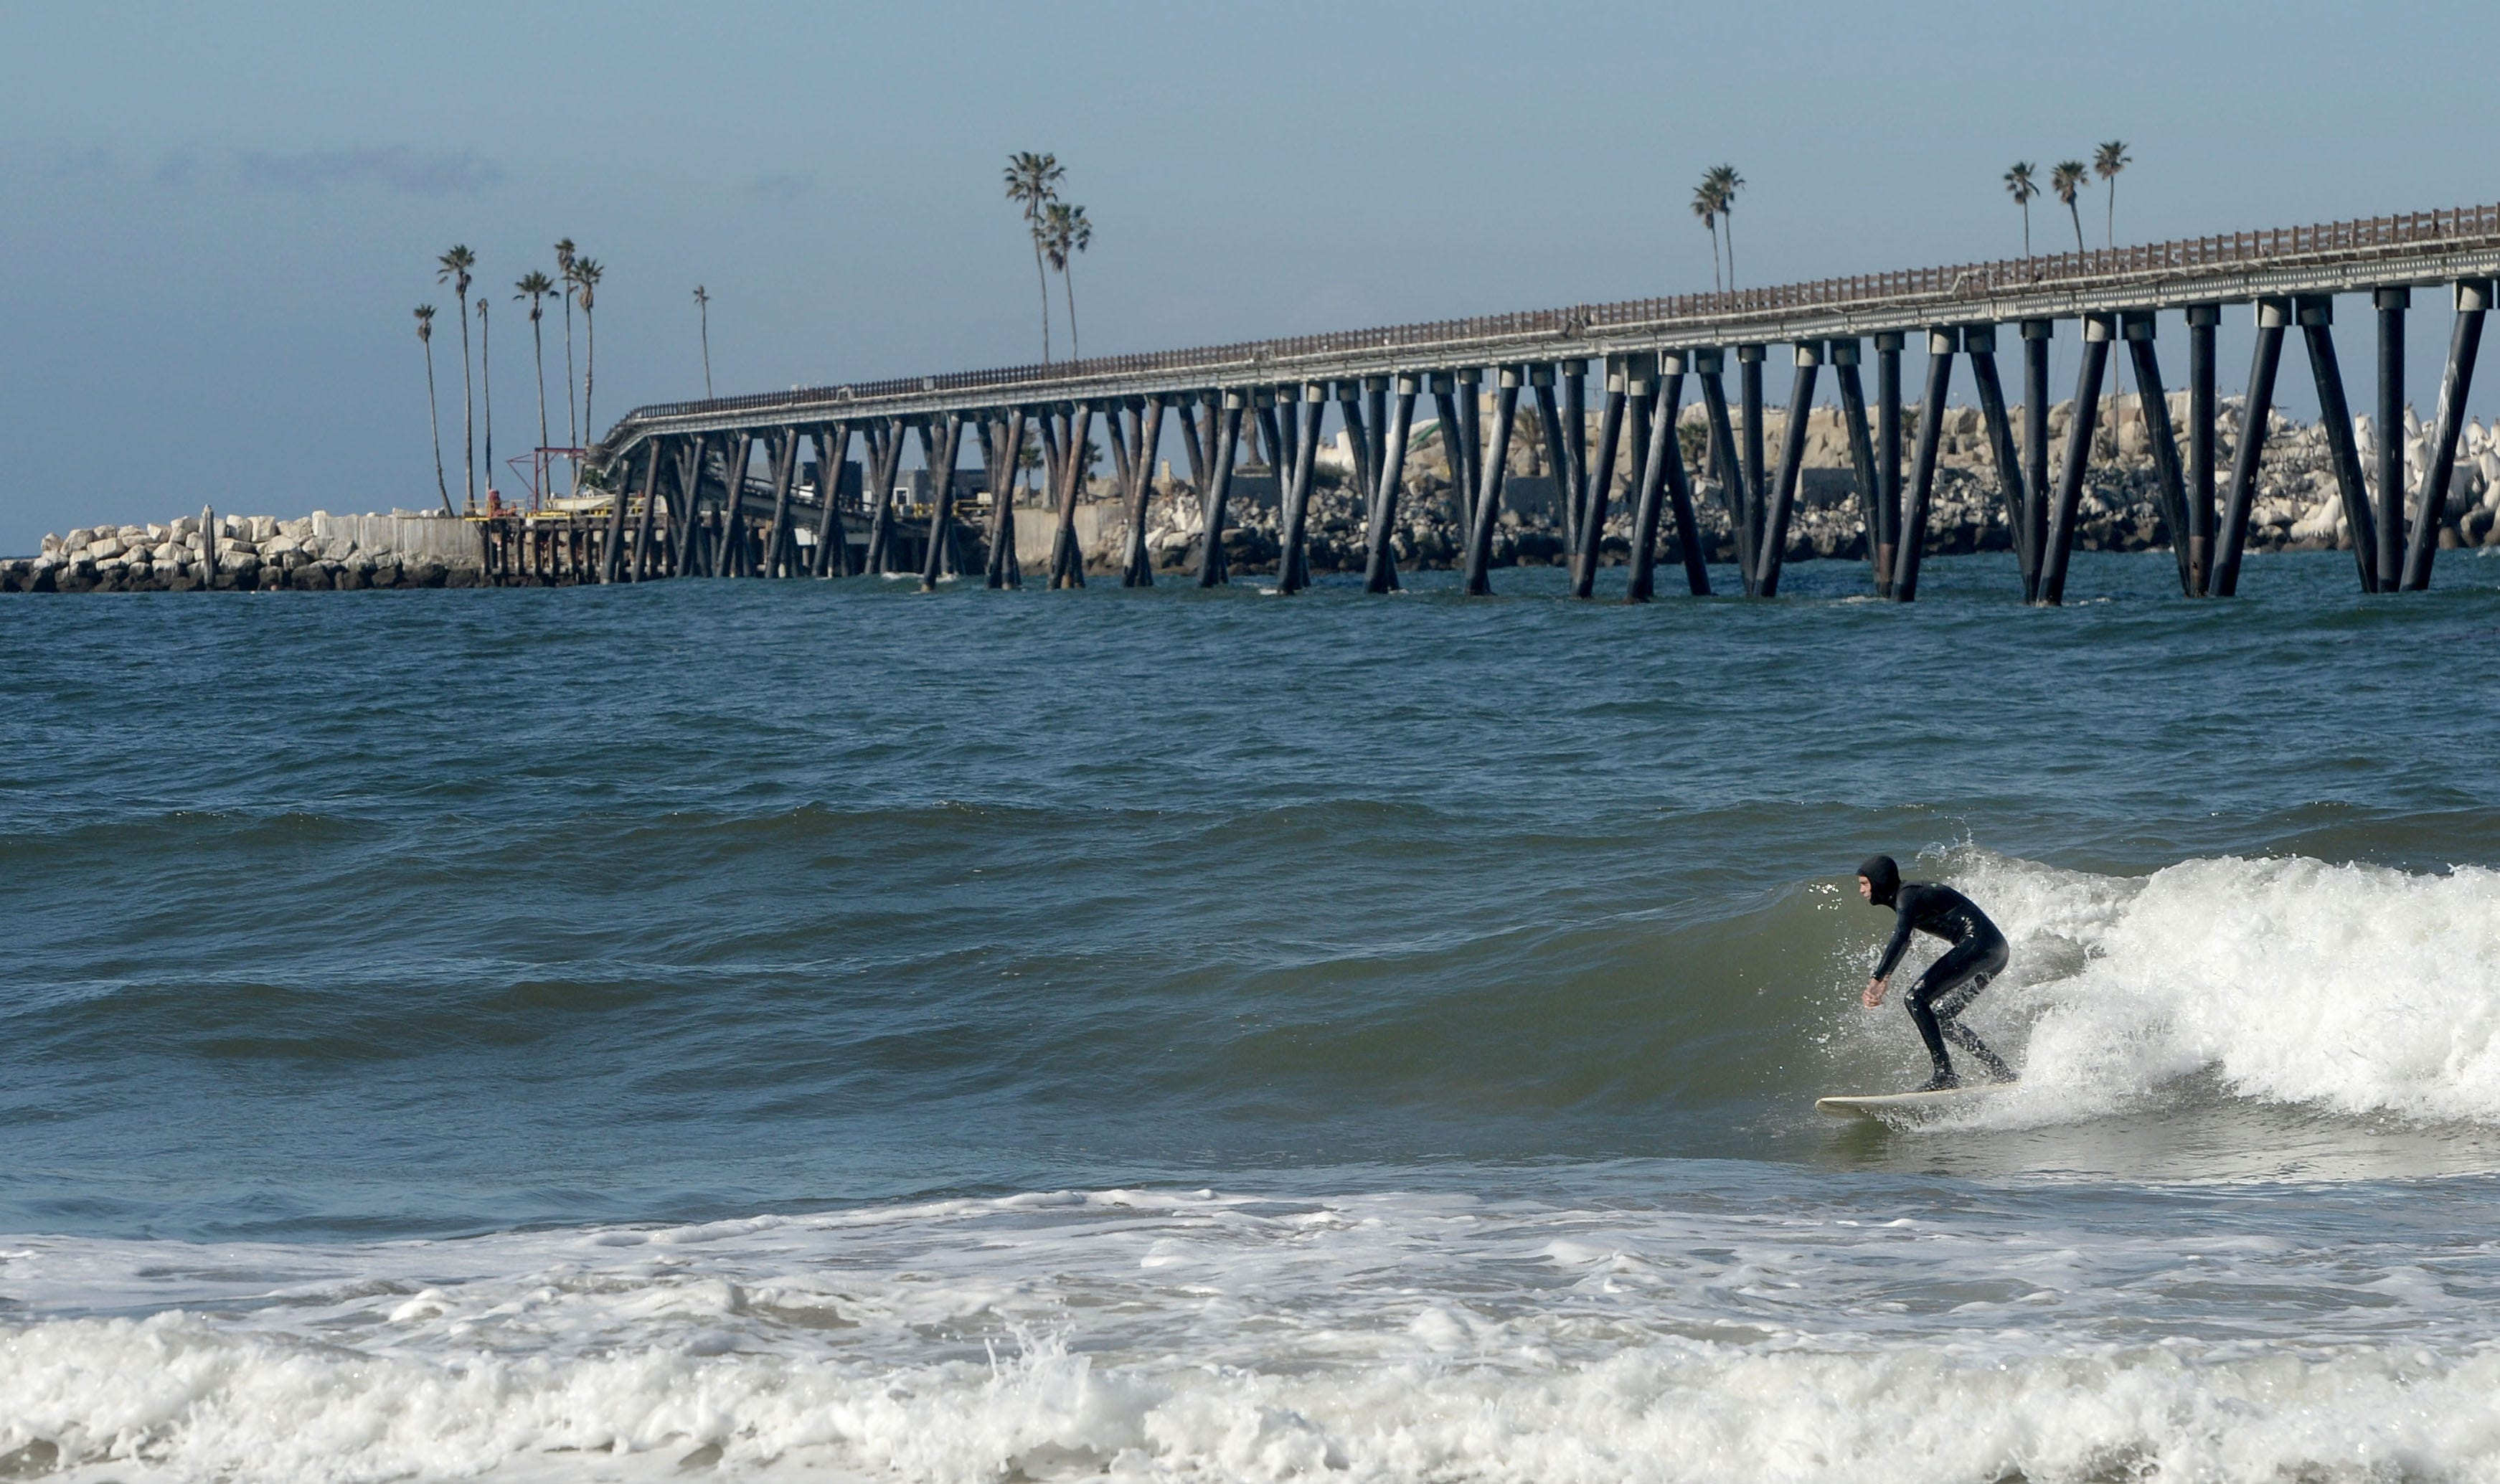 A surfer catches a wave near Rincon Island, just off the coast of Mussel Shoals. The state of California paid tens of millions of dollars to plug and abandon the island's oil wells after the operator, Rincon Island Limited Partnership, filed for bankruptcy protection.